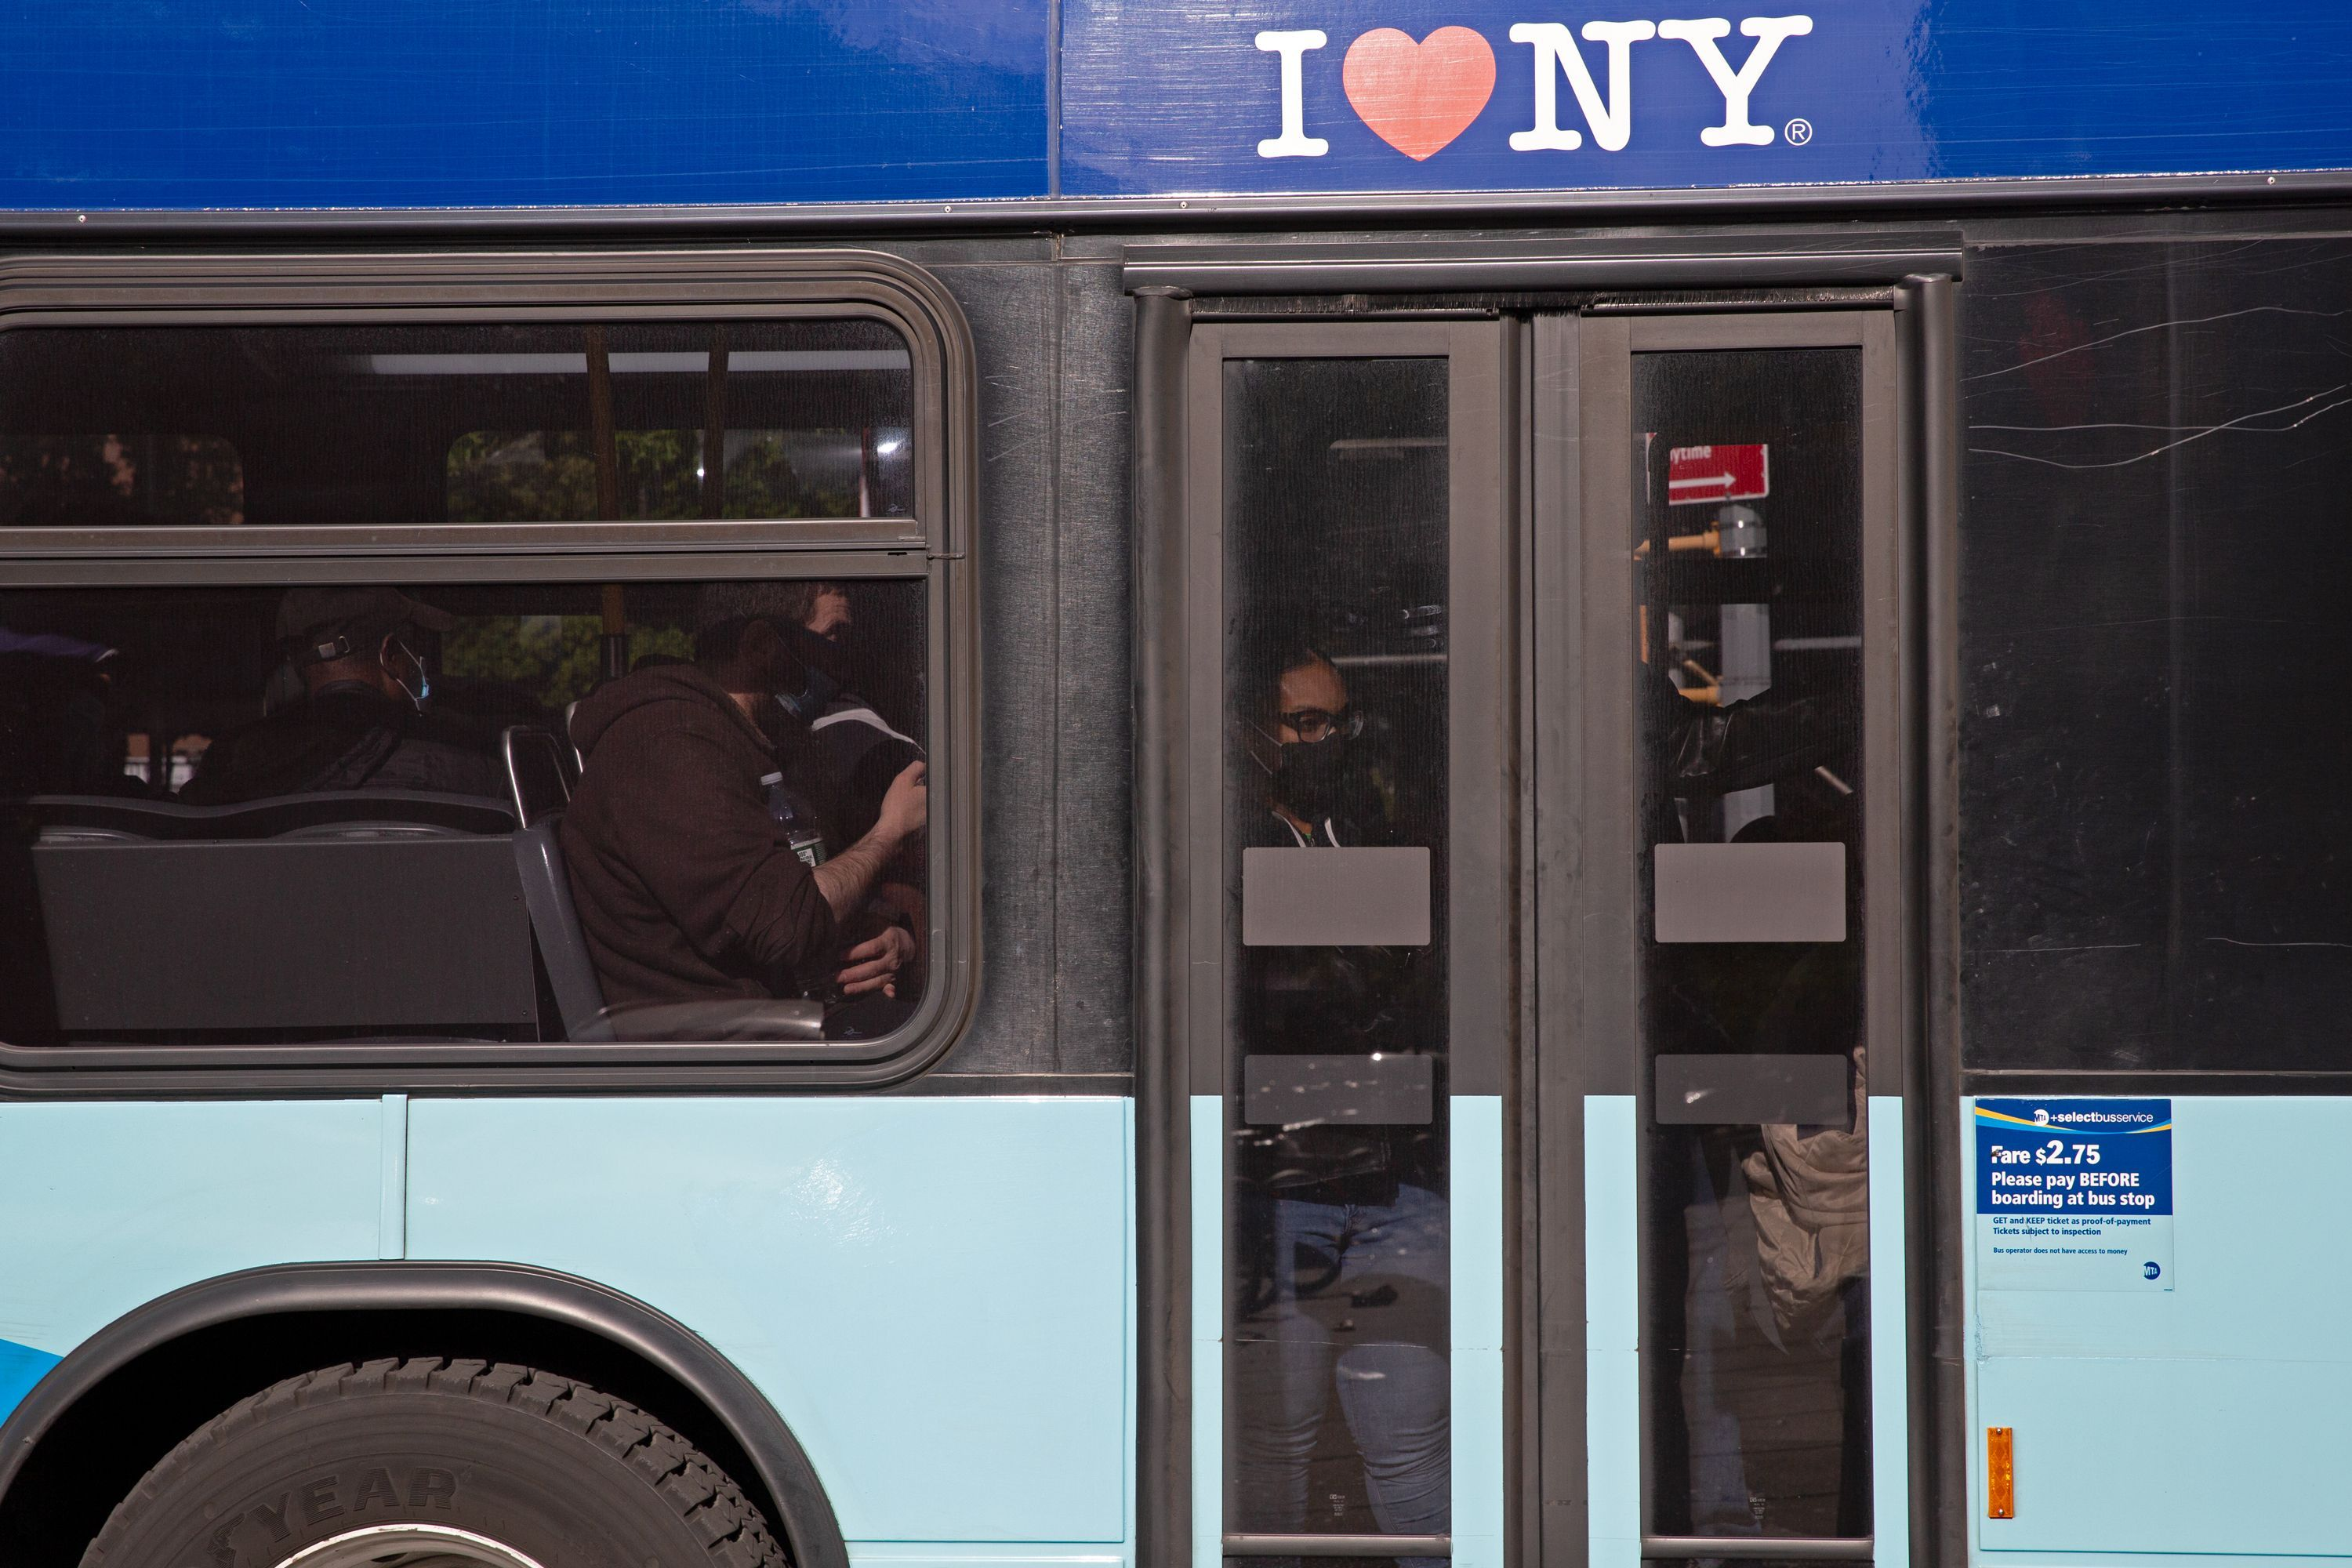 Riders were packed onto an MTA bus in Brooklyn during the coronavirus outbreak.